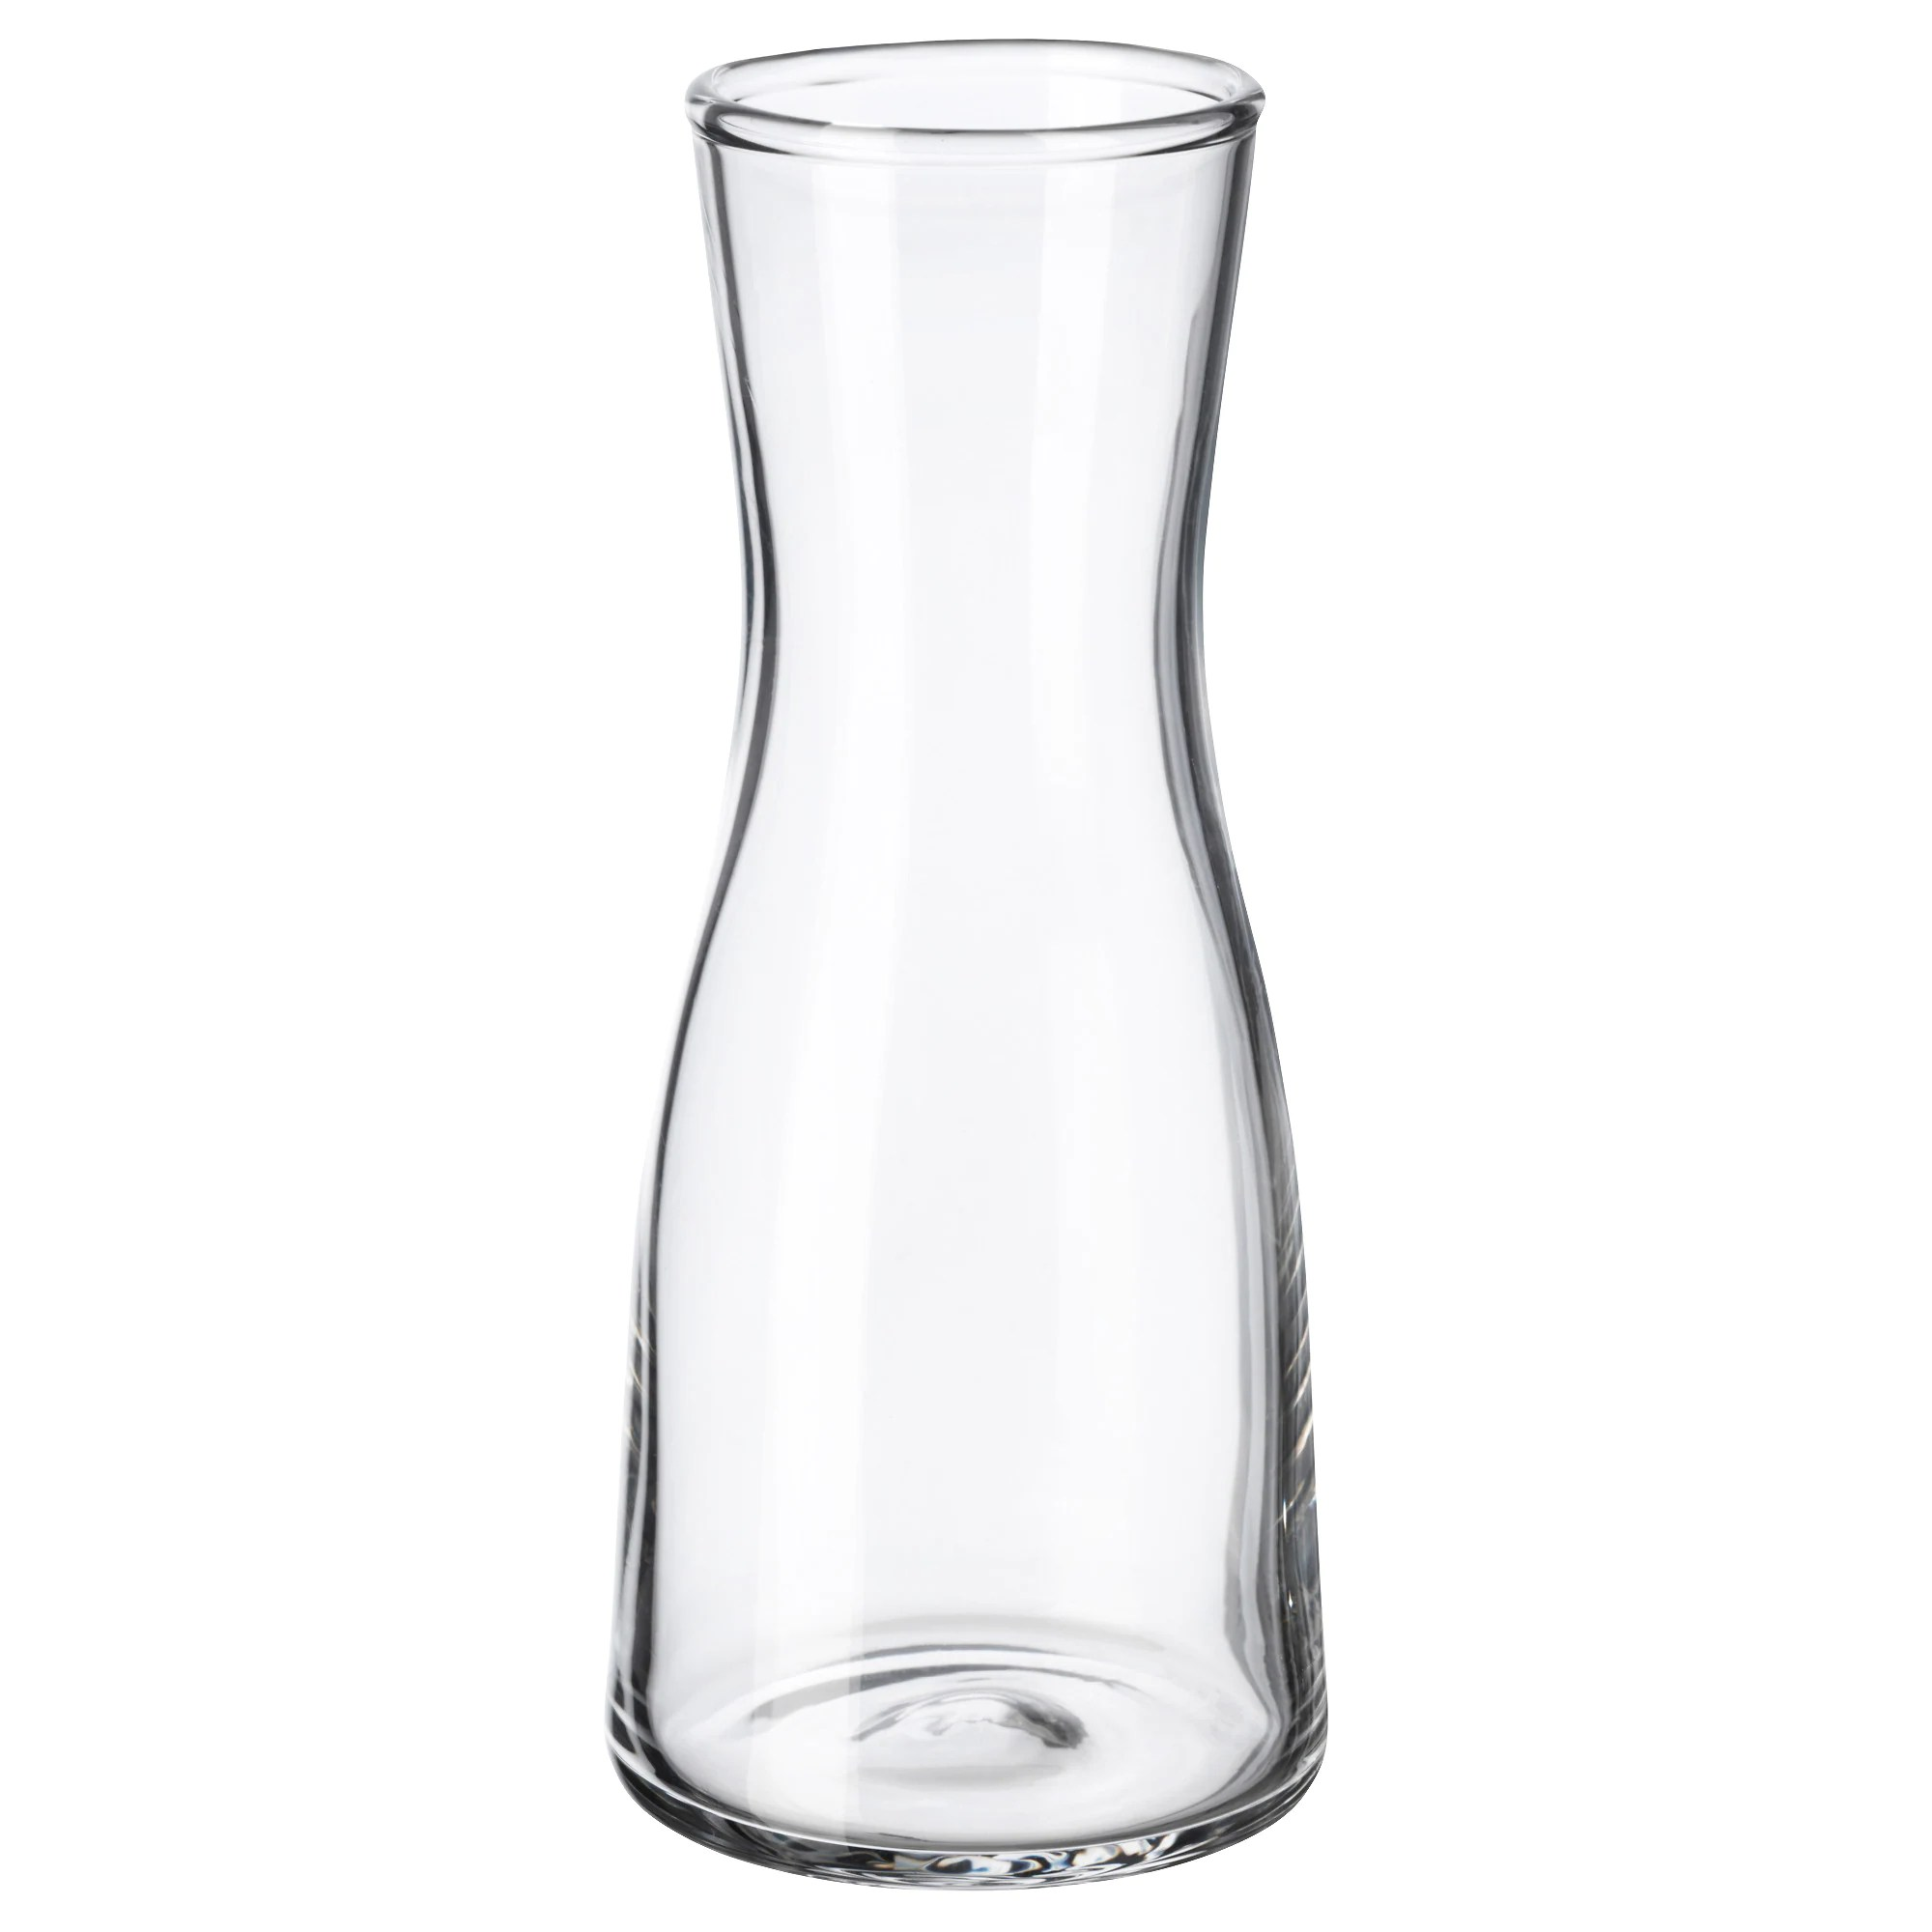 Glass Vases Ikea Tidvatten Vase Clear Glass